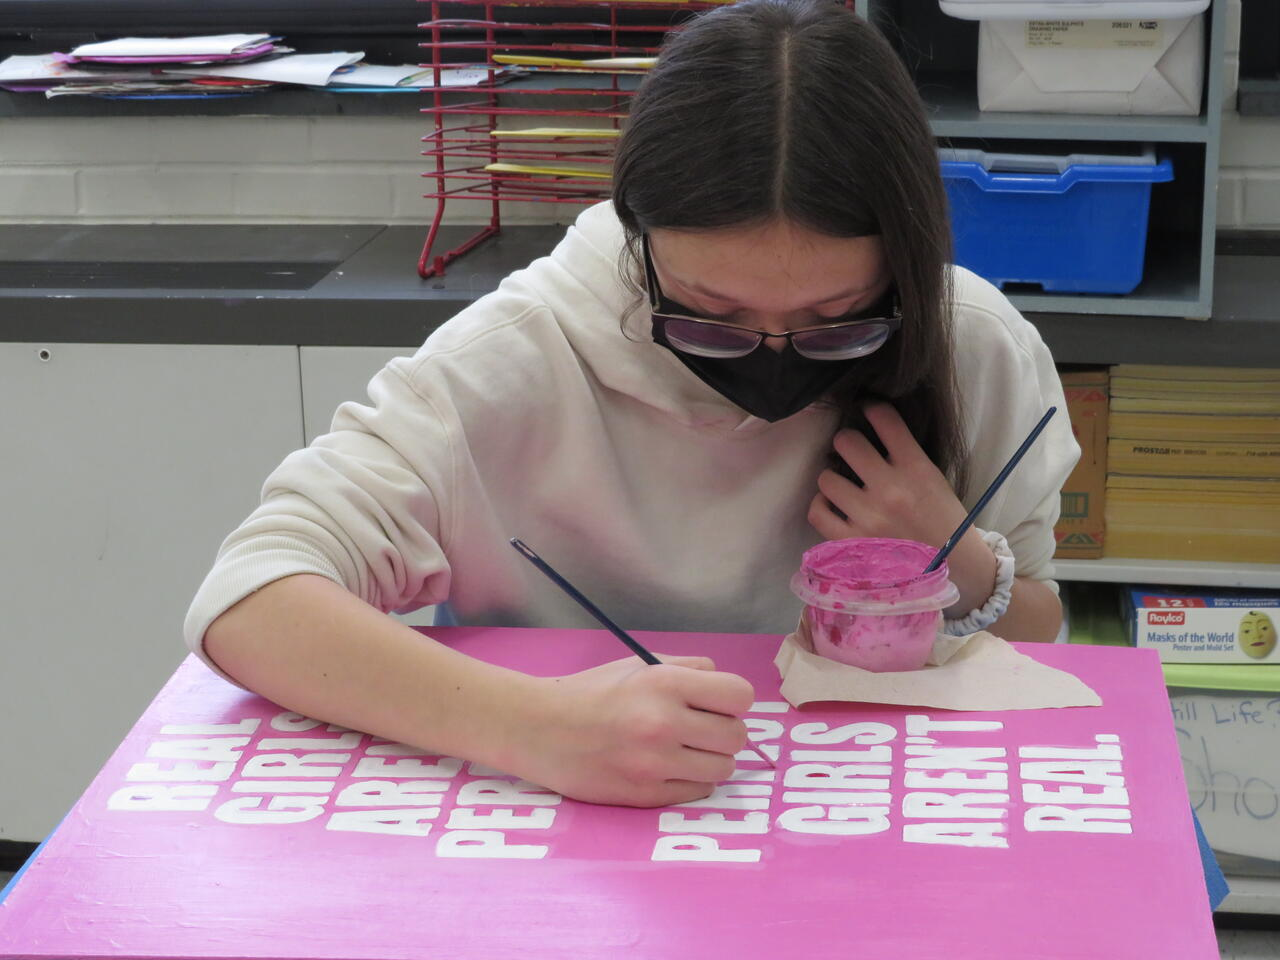 Leaving a Legacy: Eighth-graders design, paint mural for bathrooms